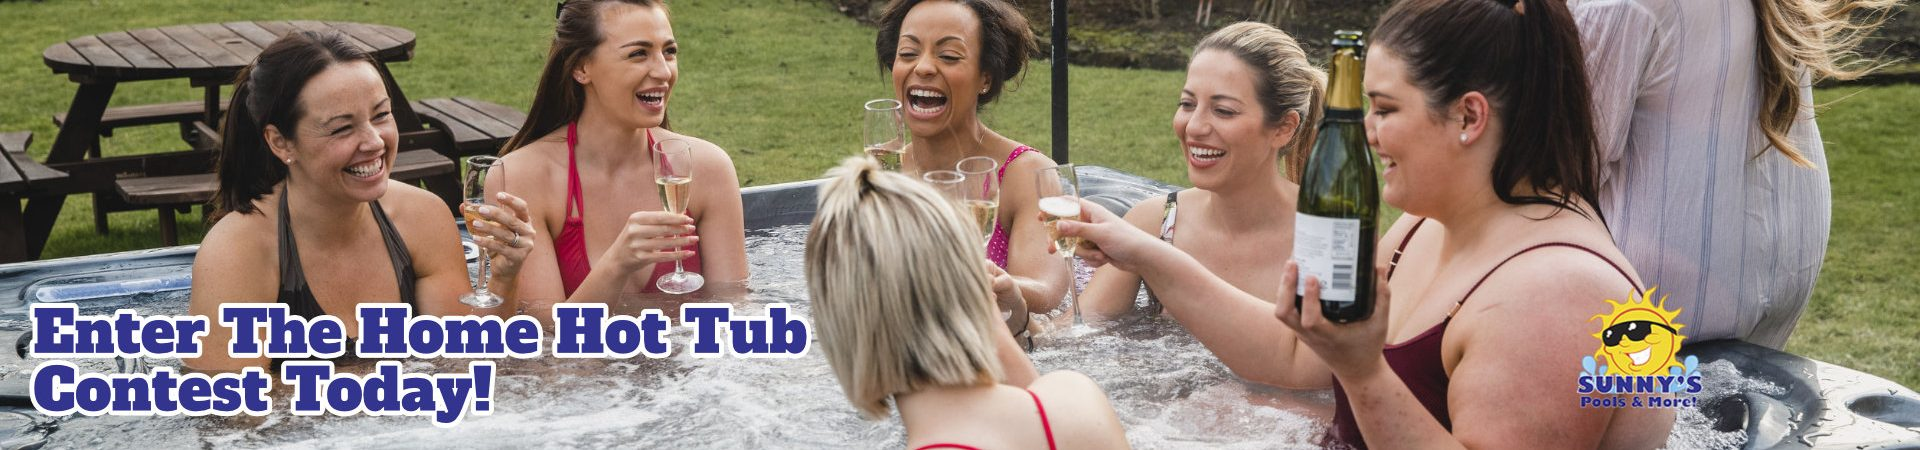 Home Hot Tub Picture Contest!